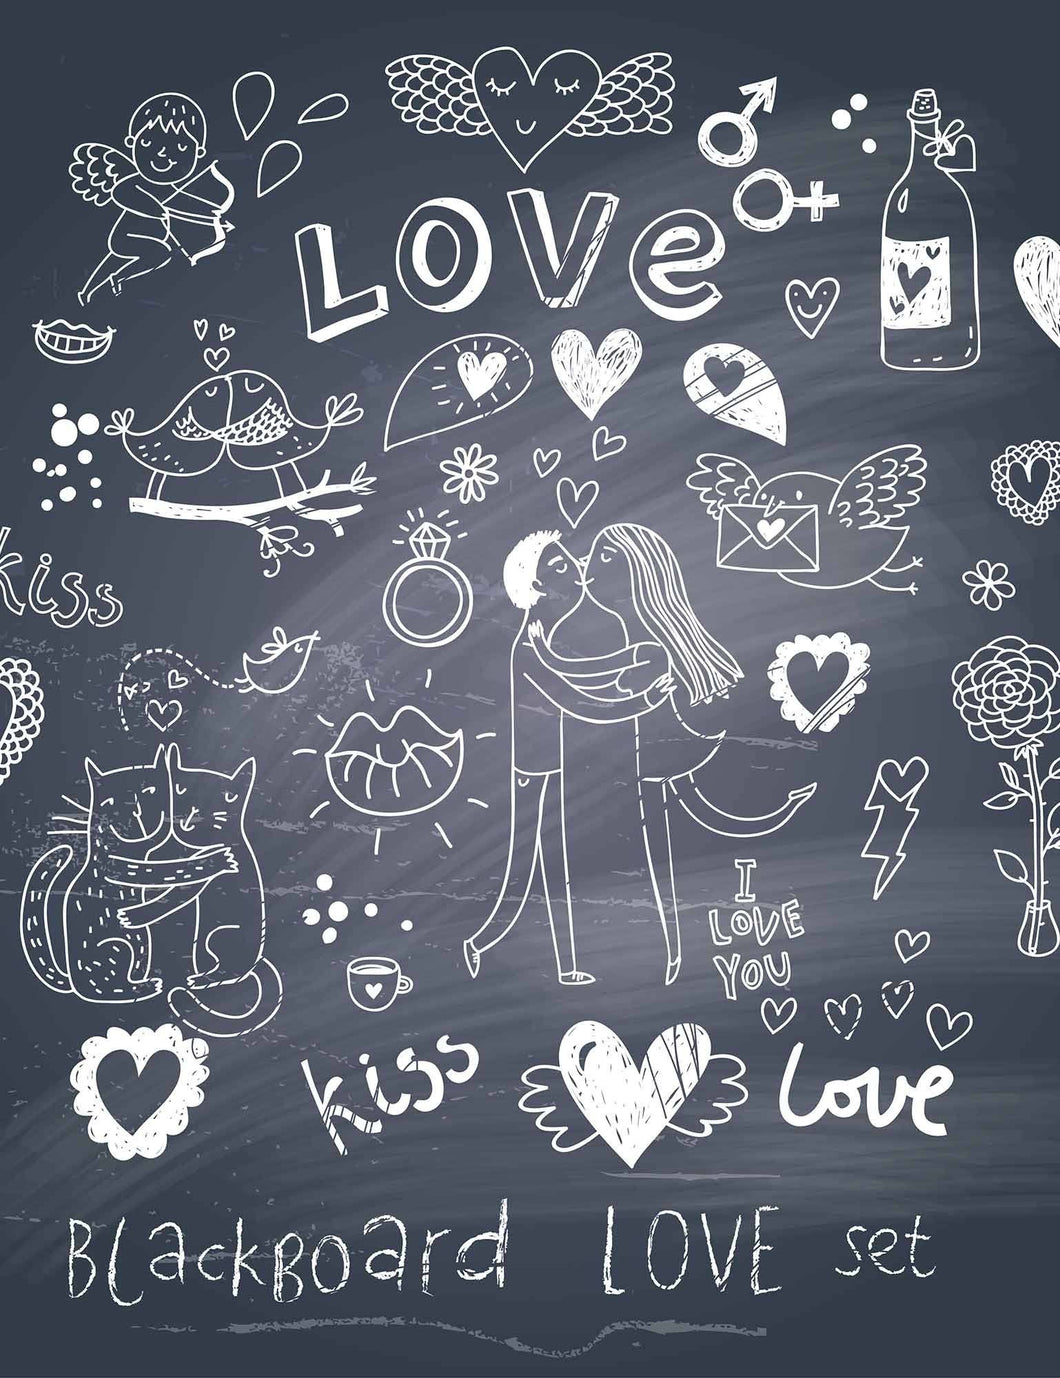 Draw Couple And Love On Blackboard For Valentines Day Photography Backdrop - Shop Backdrop